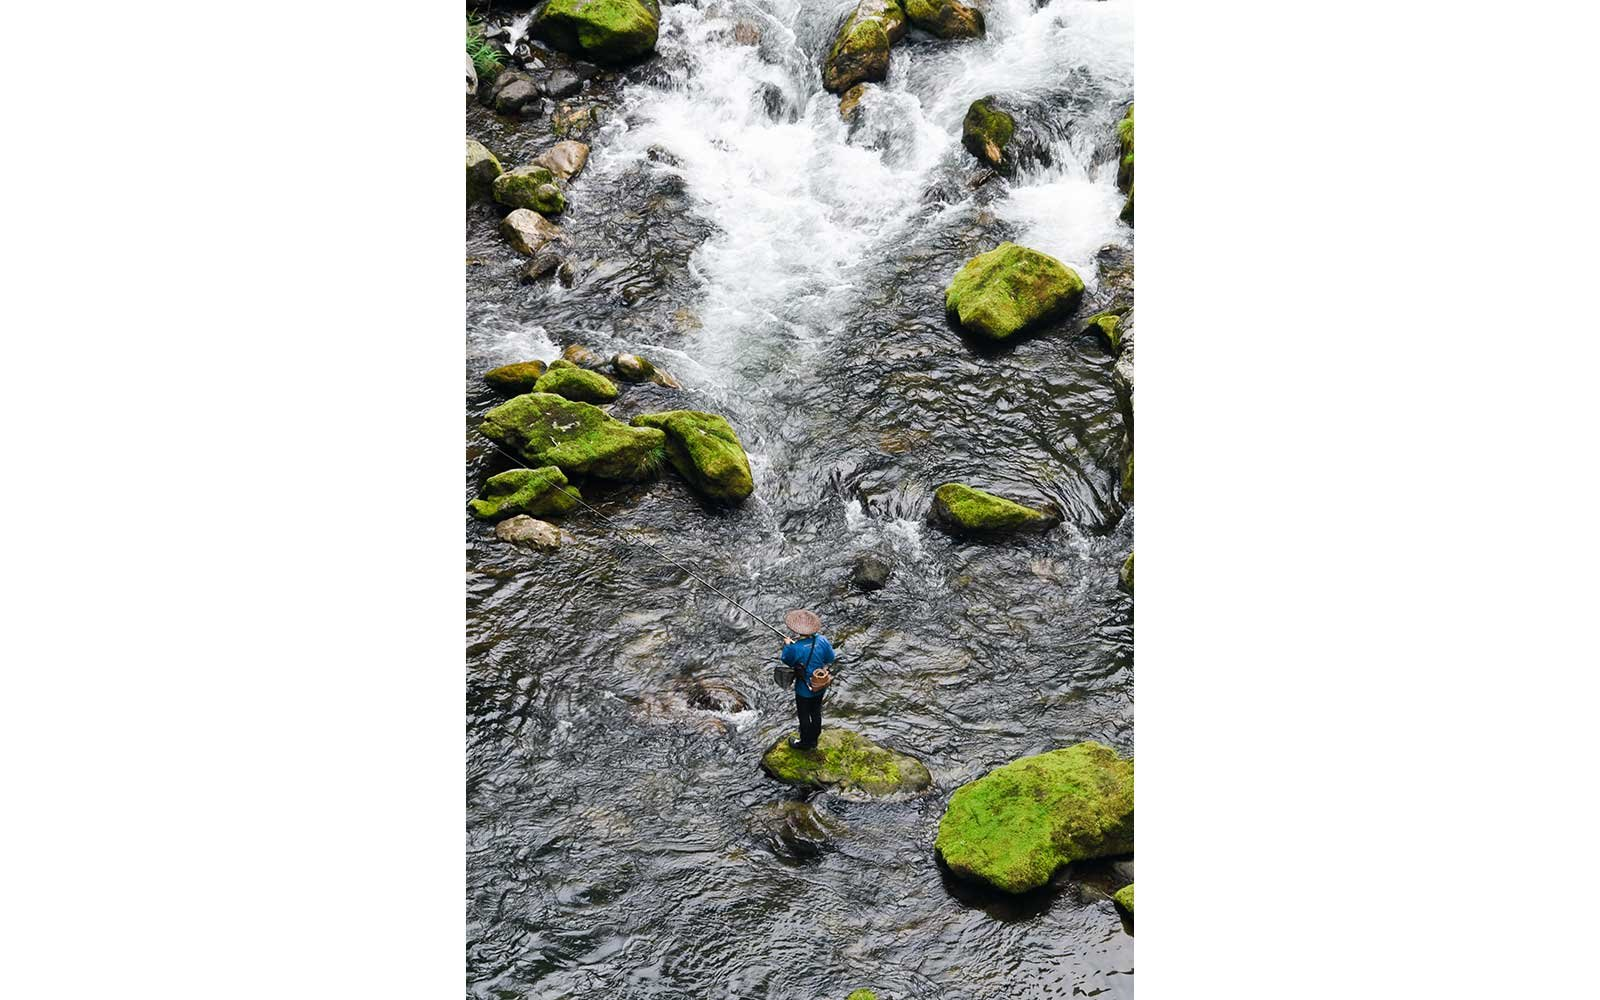 Fisherman standing in a river